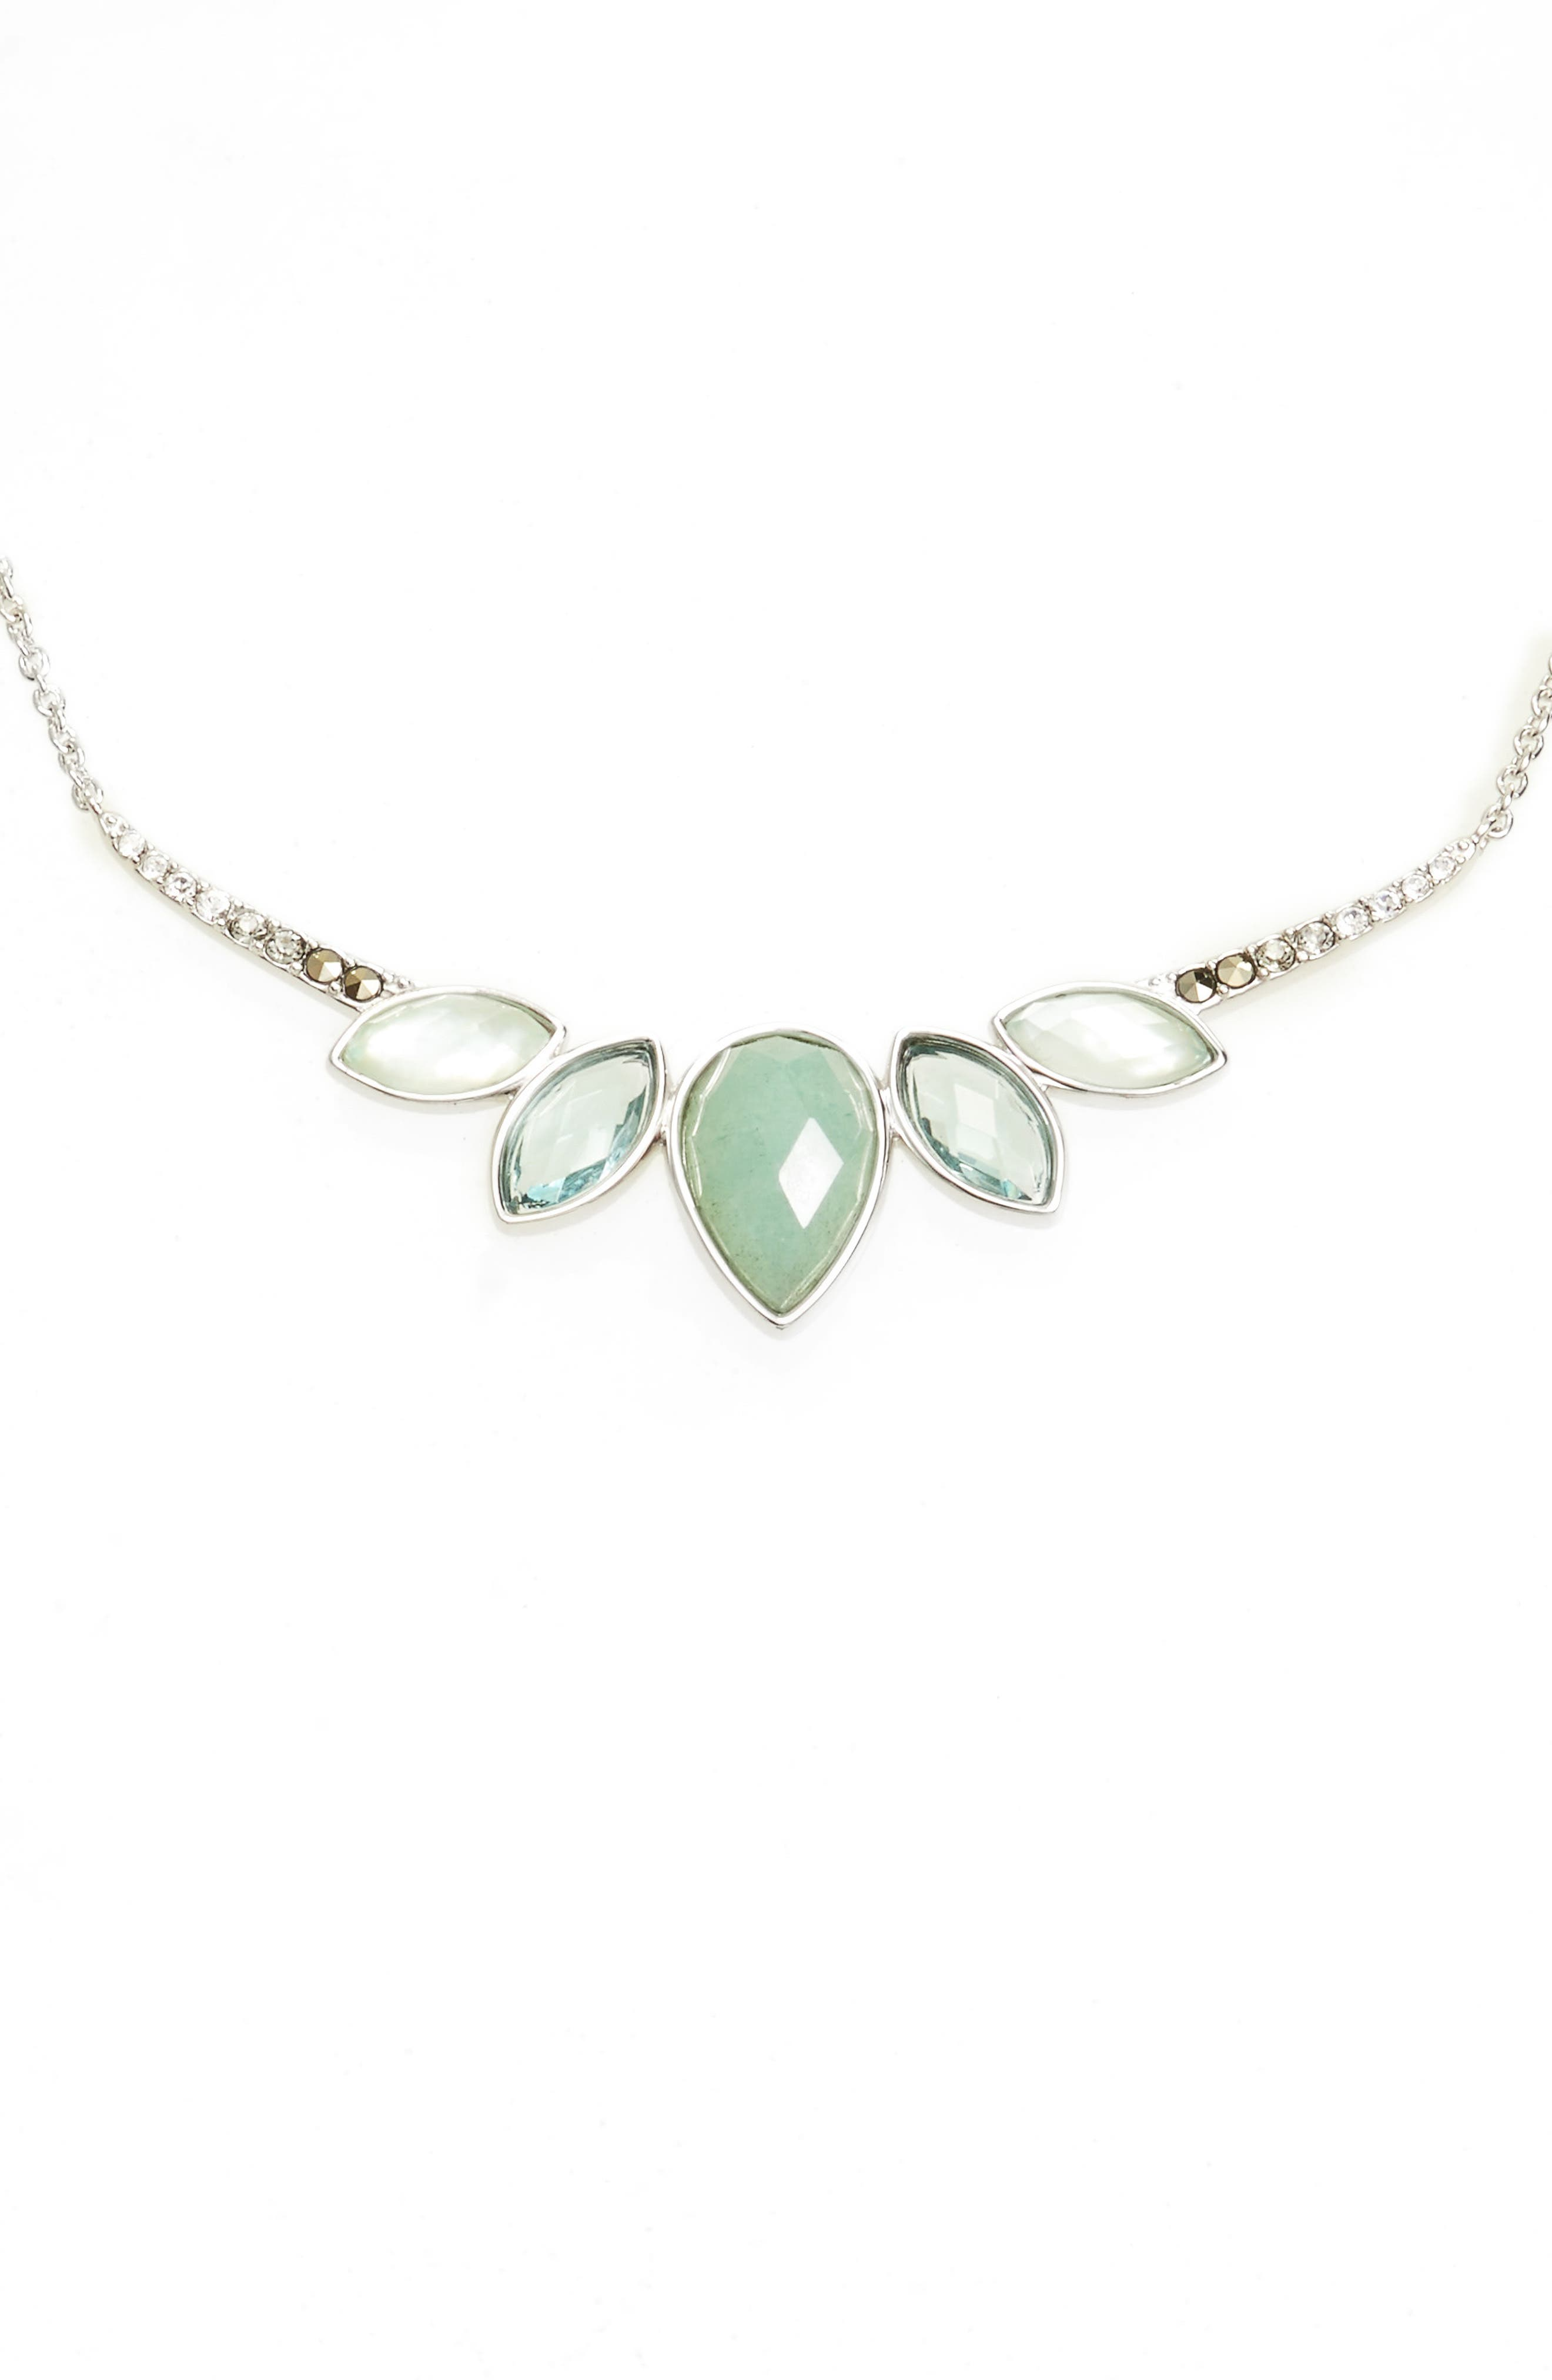 JUDITH JACK Lakeside Crystal Frontal Necklace